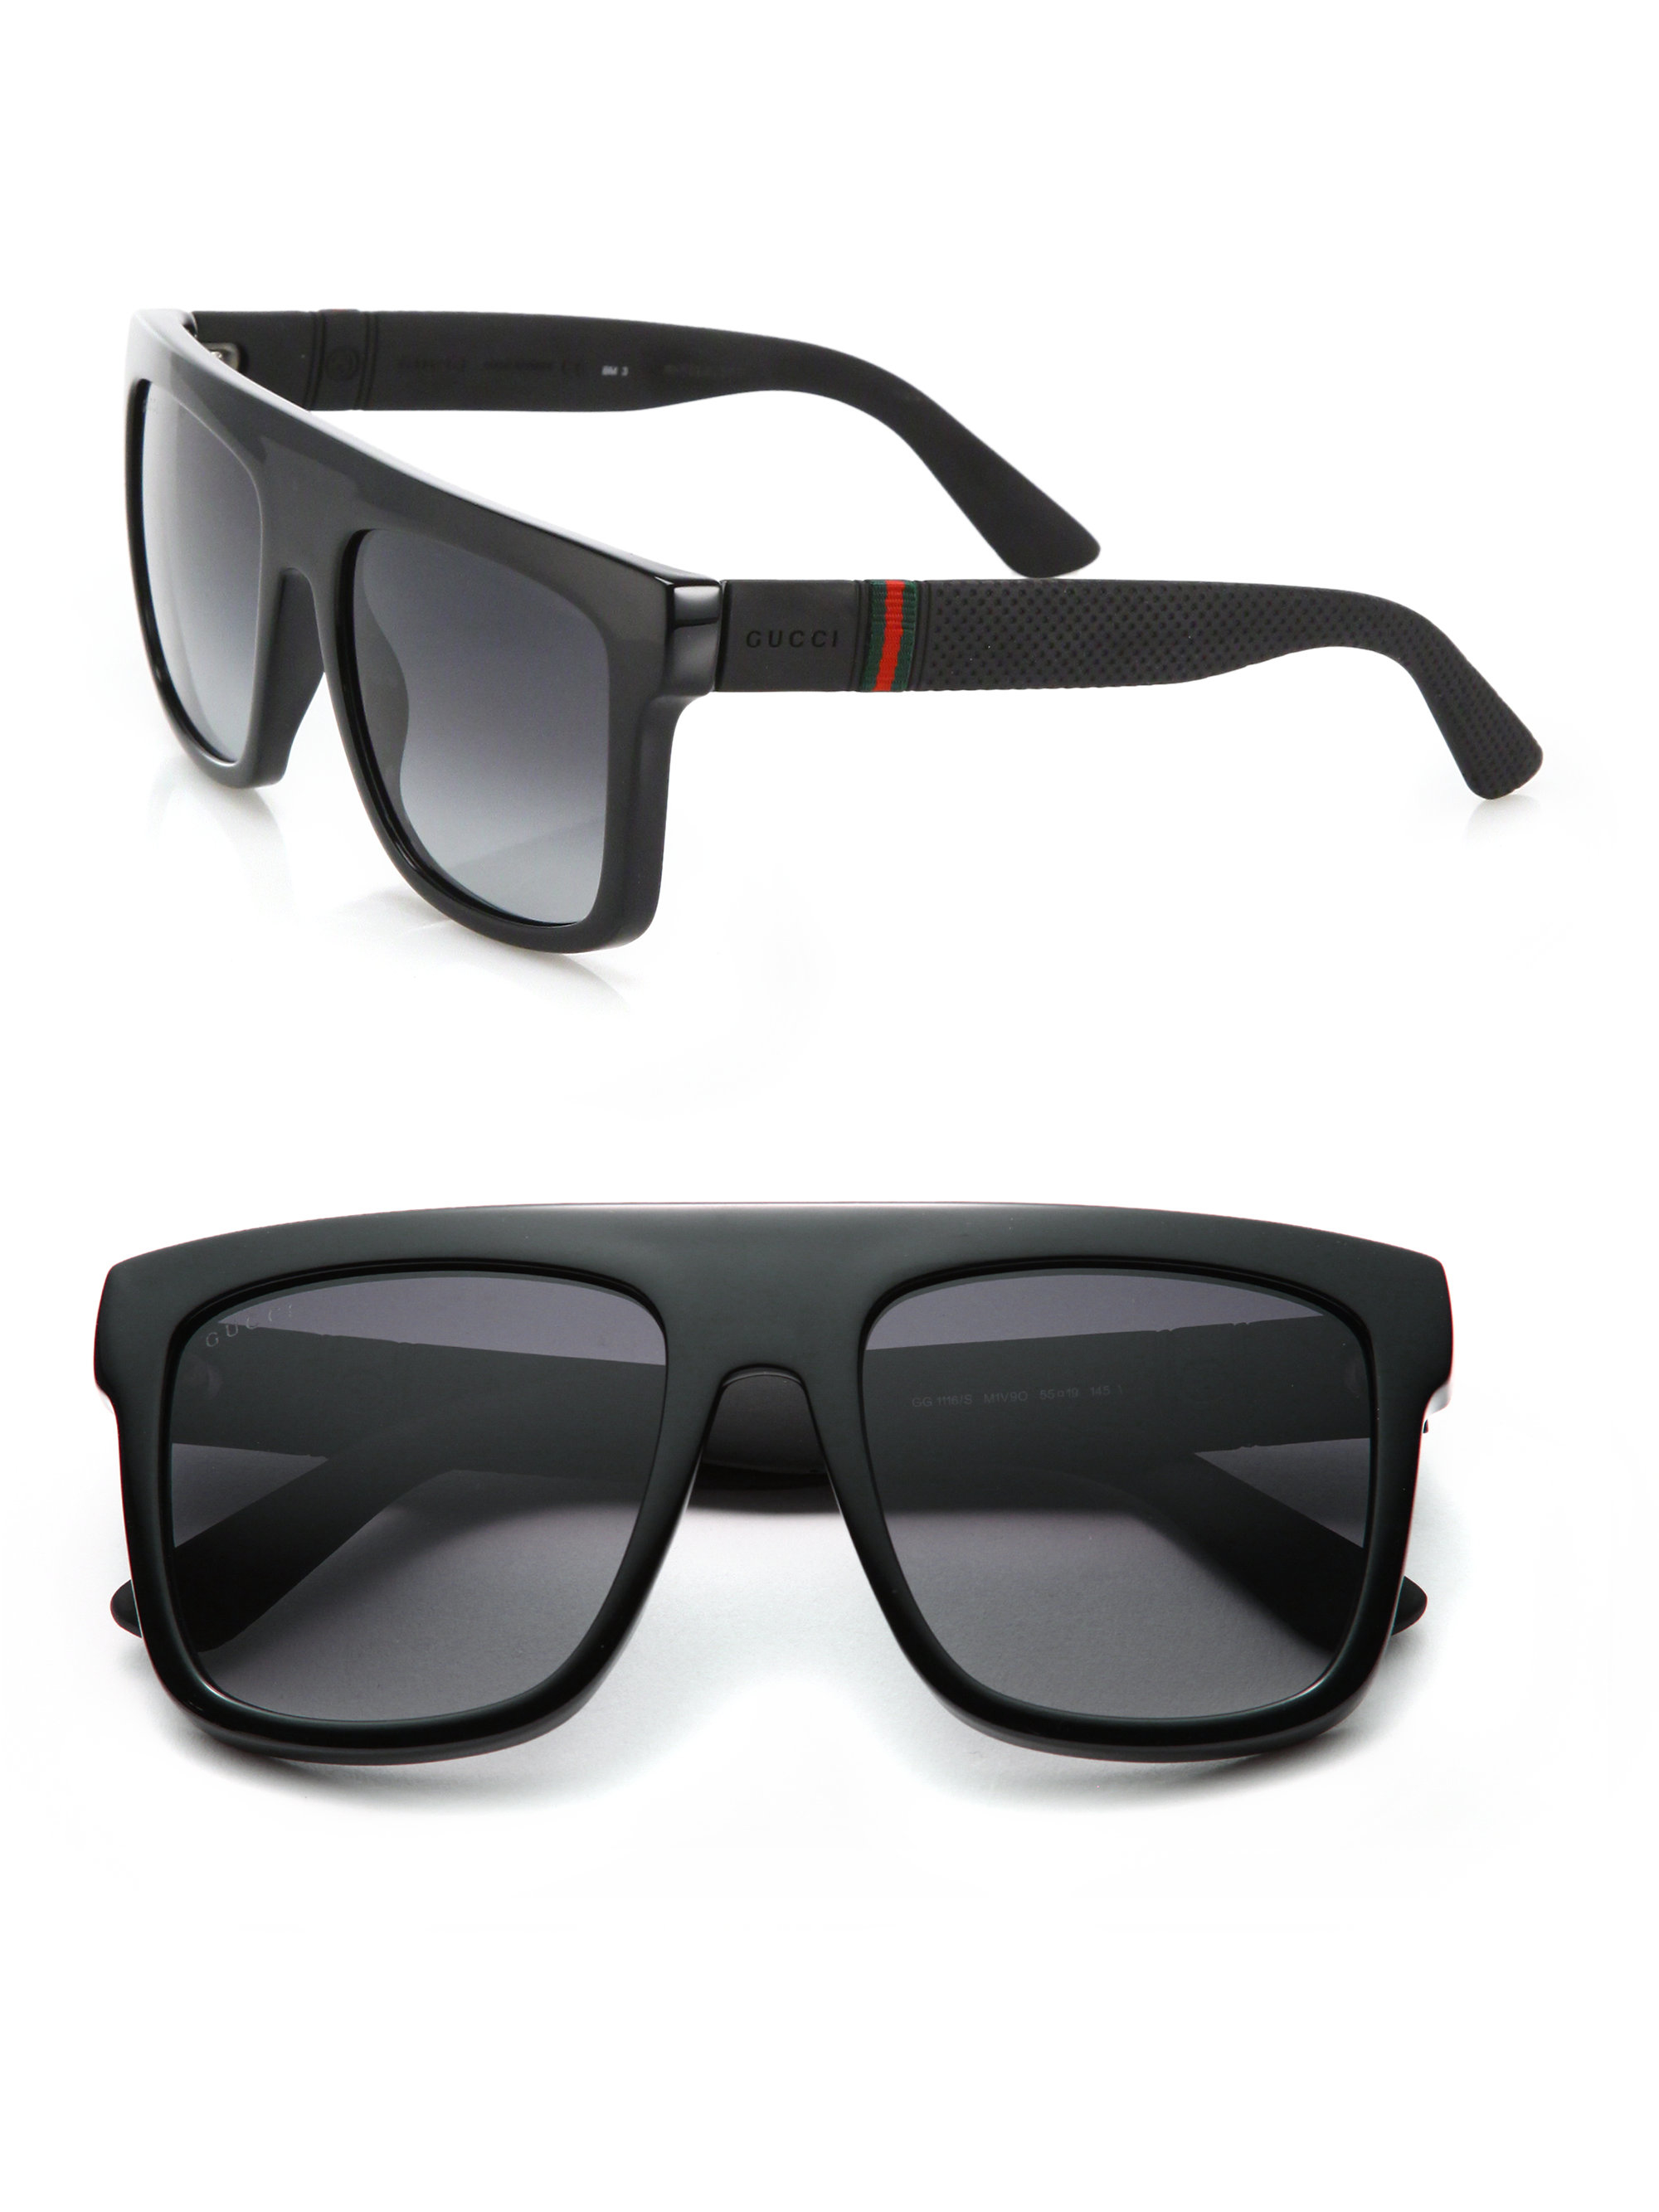 944a09ef9114 Gucci 55mm Flat-top Injected Sunglasses in Black for Men - Lyst